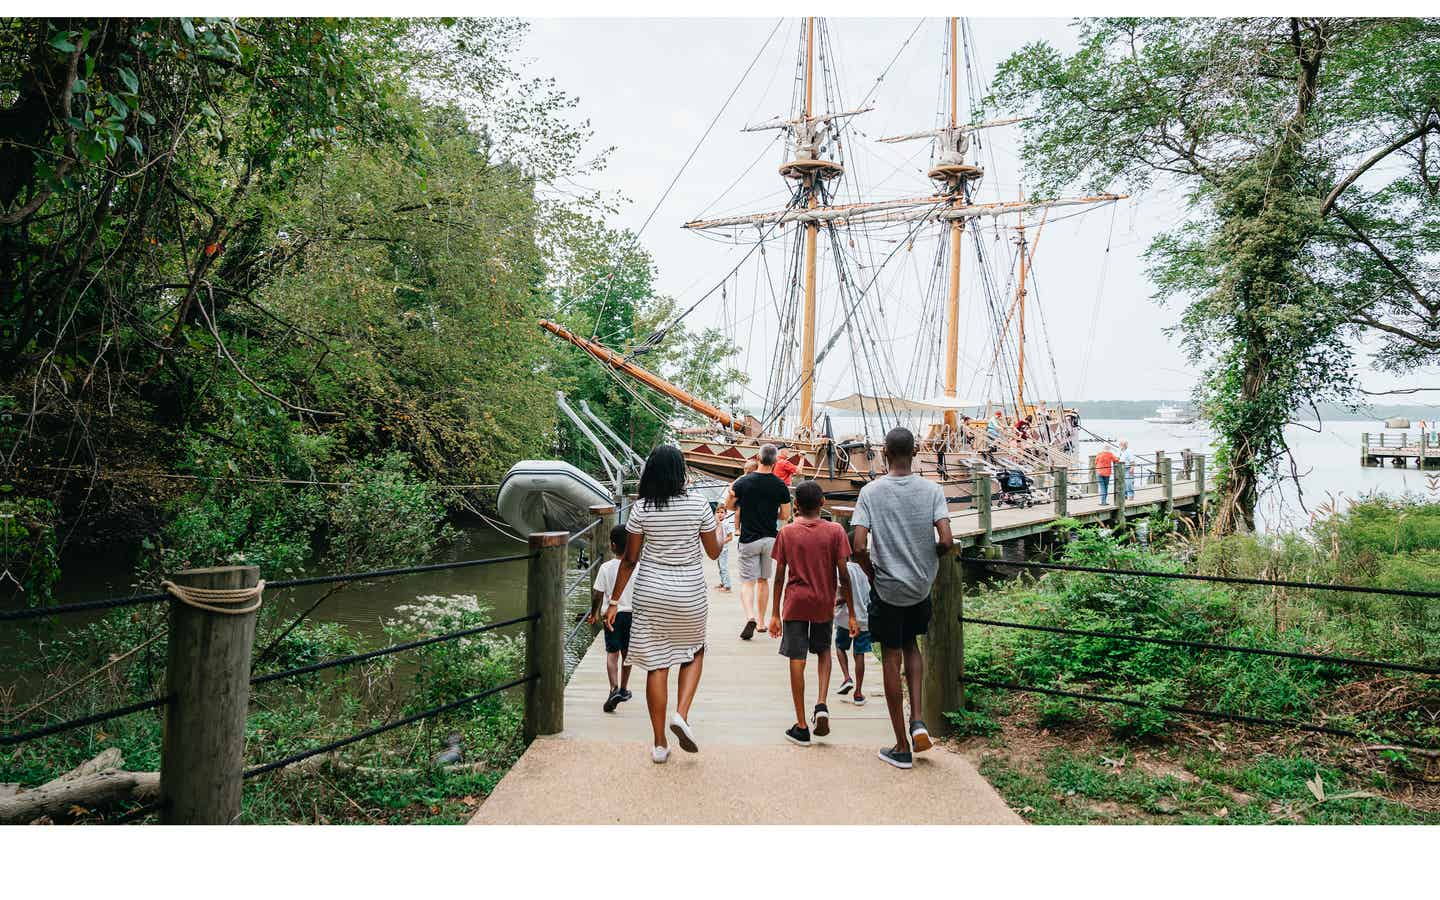 A family walks towards the Susan Constant ship at Jamestown Settlement in Williamsburg, Virginia.